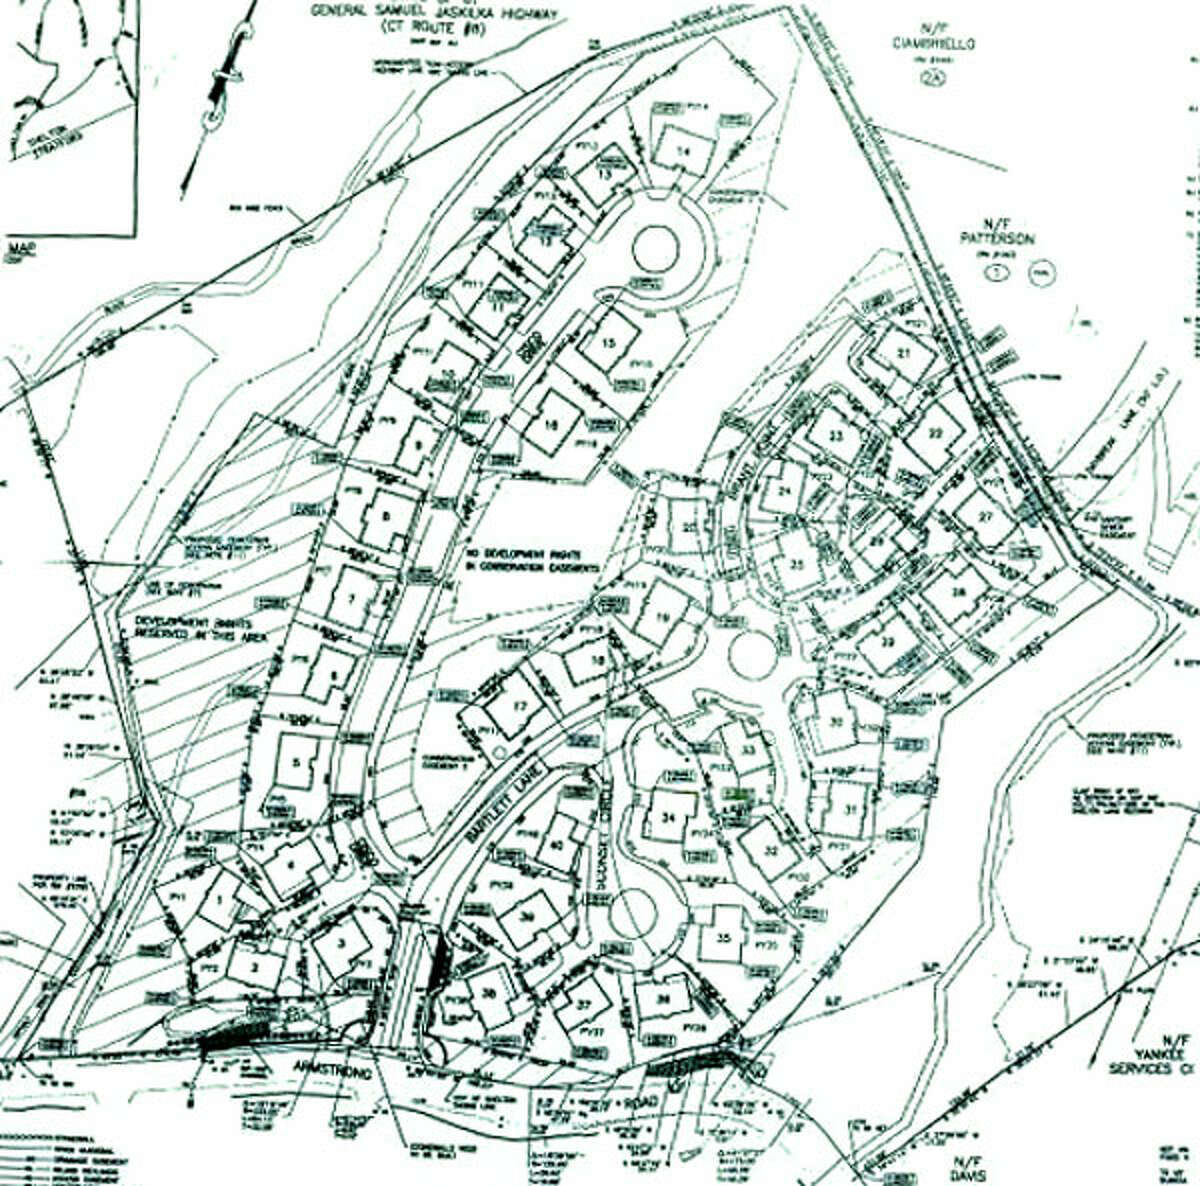 A zoning document that shows the Cranberry Hill Estates development, with Armstrong Road on the bottom. Route 8 would be in the upper left.